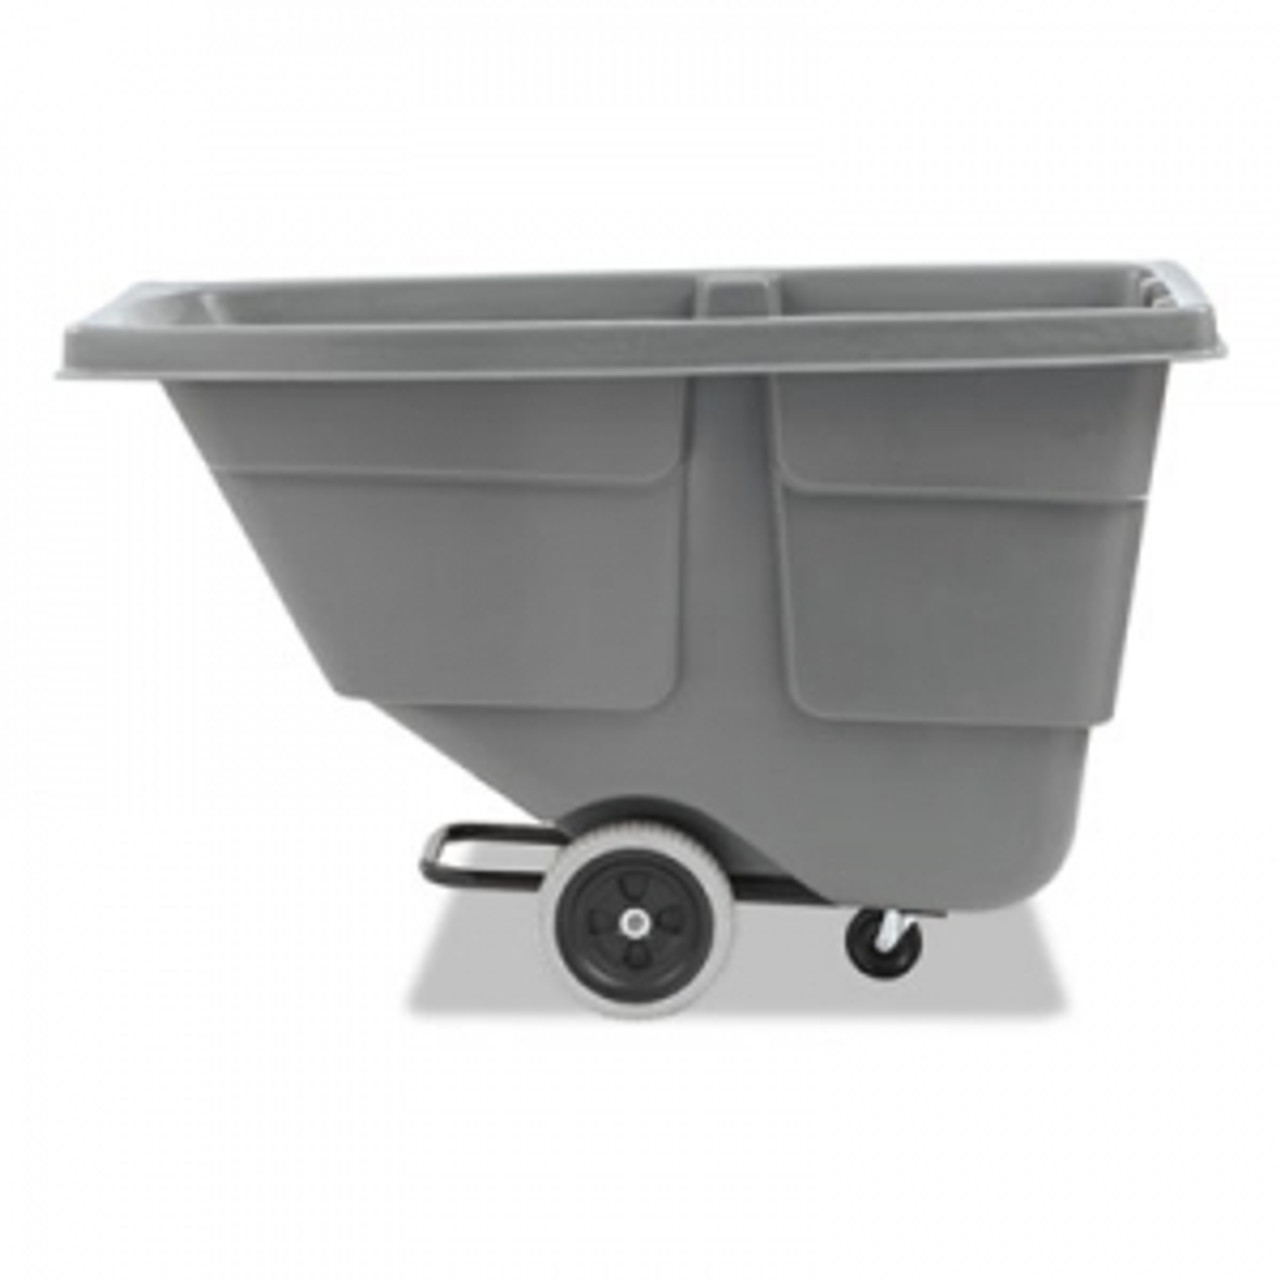 Value priced 1/2 cubic yard tilt truck